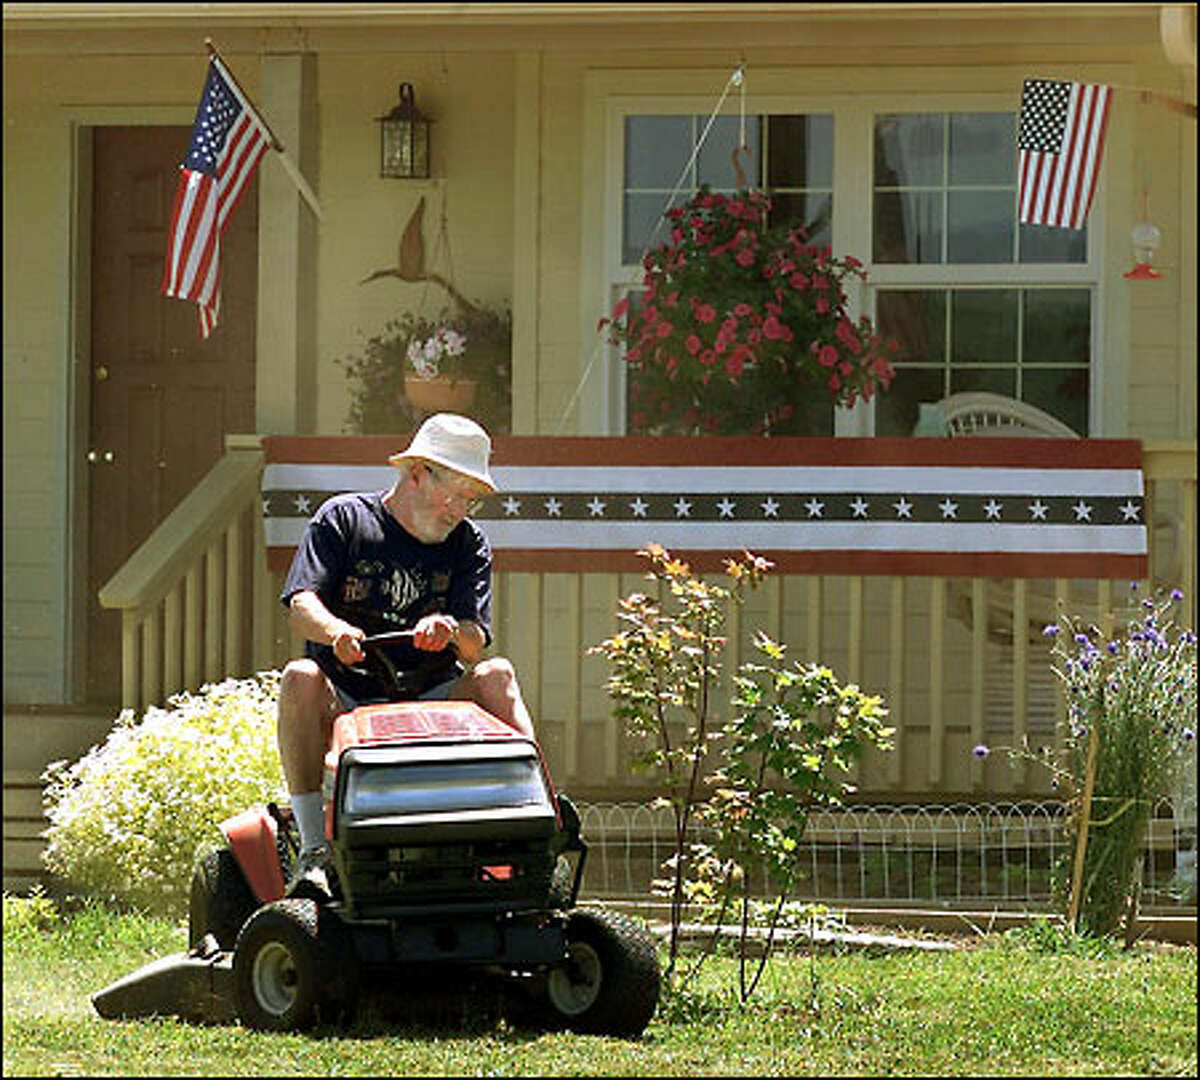 Rudy Onstaqd, who lives about a quarter of a mile from the site of the big fireworks show, cuts his lawn as he gets ready for friends and relatives who will join him.